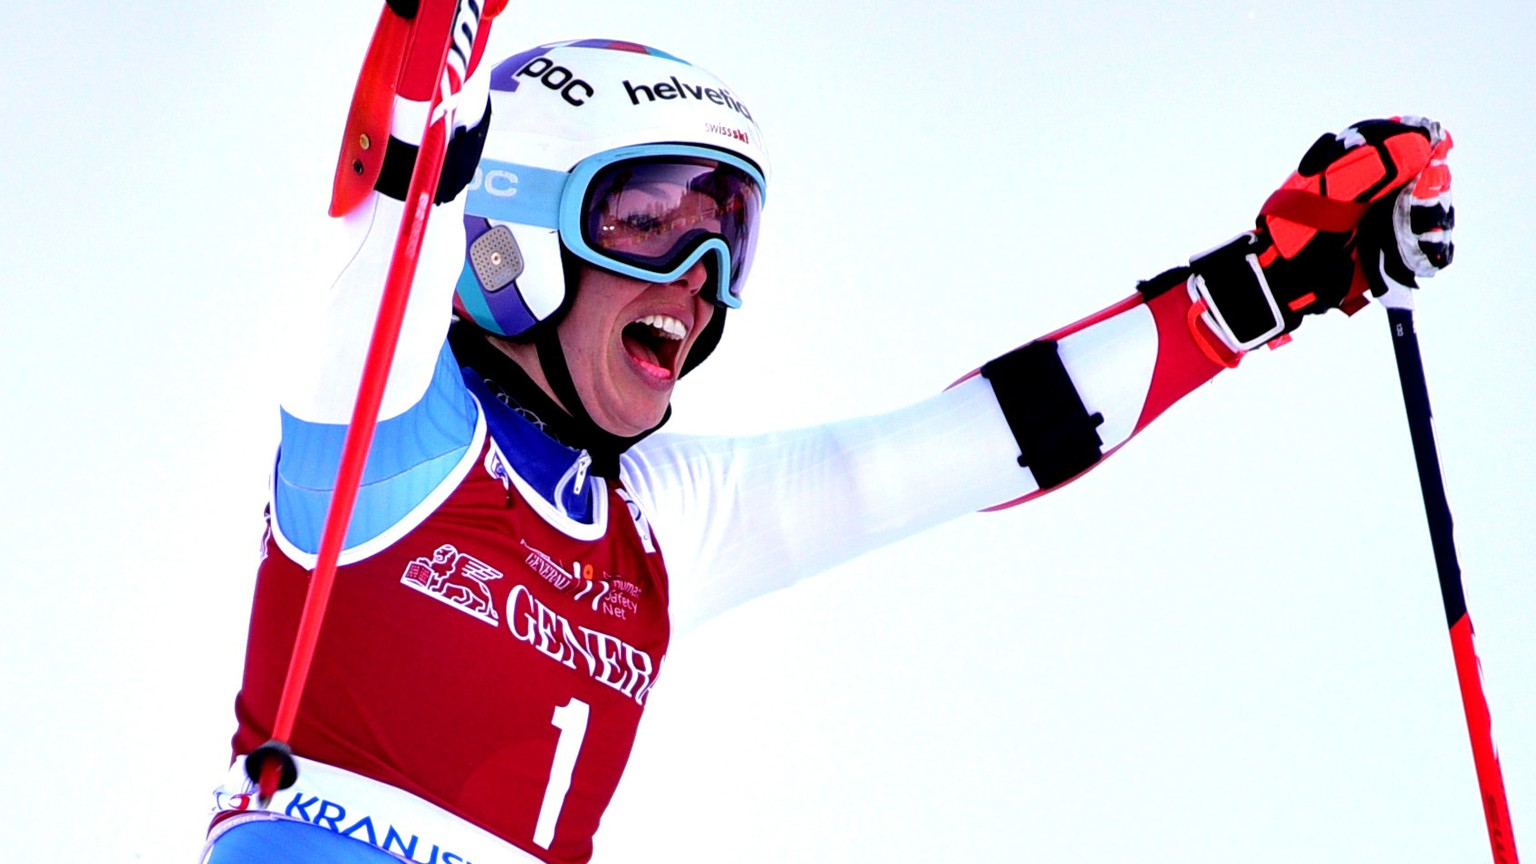 epa08941688 Michelle Gisin of Switzerland celebrates after taking the third place in the women's Giant Slalom race of the FIS Alpine Skiing World Cup in Kranjska Gora, Slovenia, 16 January 2021.  EPA/IGOR KUPLJENIK